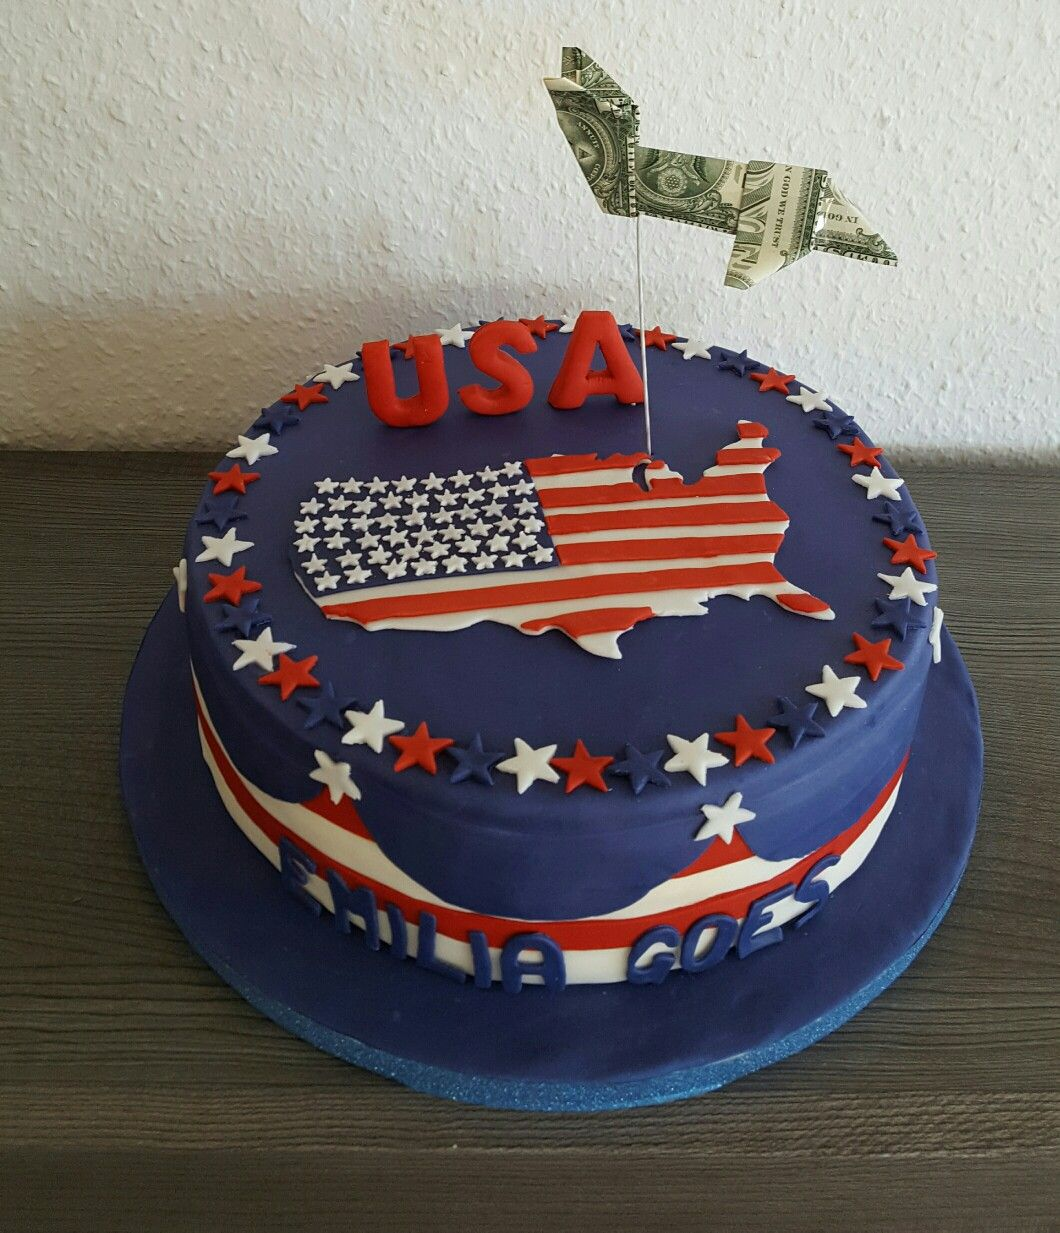 Usa Torte Fondant Flugzeug Usa Cake Fourth Of July Cakes